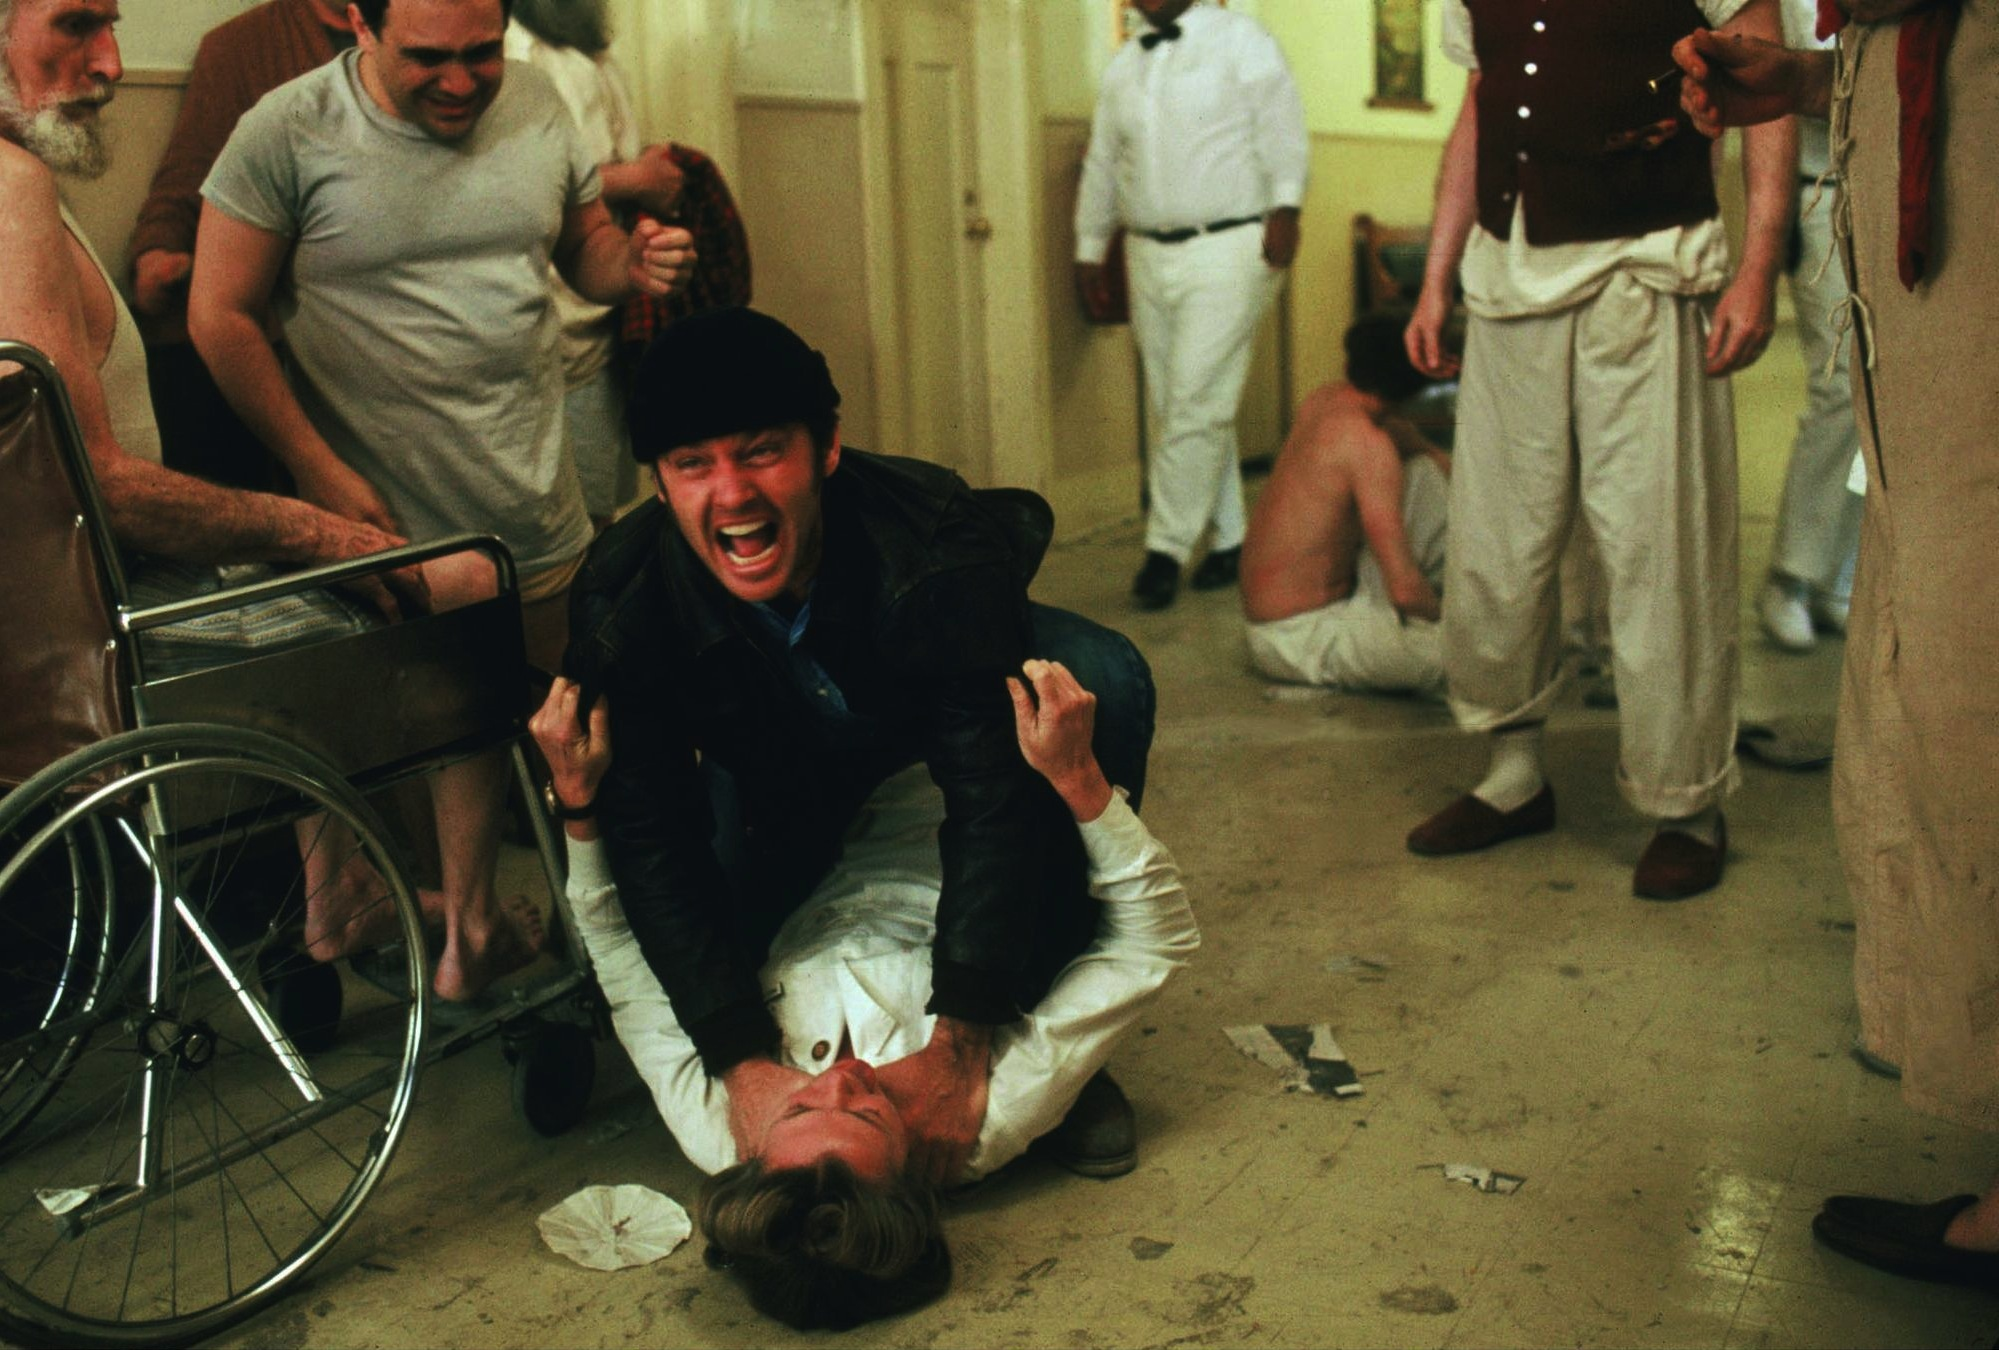 Jack Nicholson, Danny DeVito, Louise Fletcher, and Peter Brocco in One Flew Over the Cuckoo's Nest (1975)